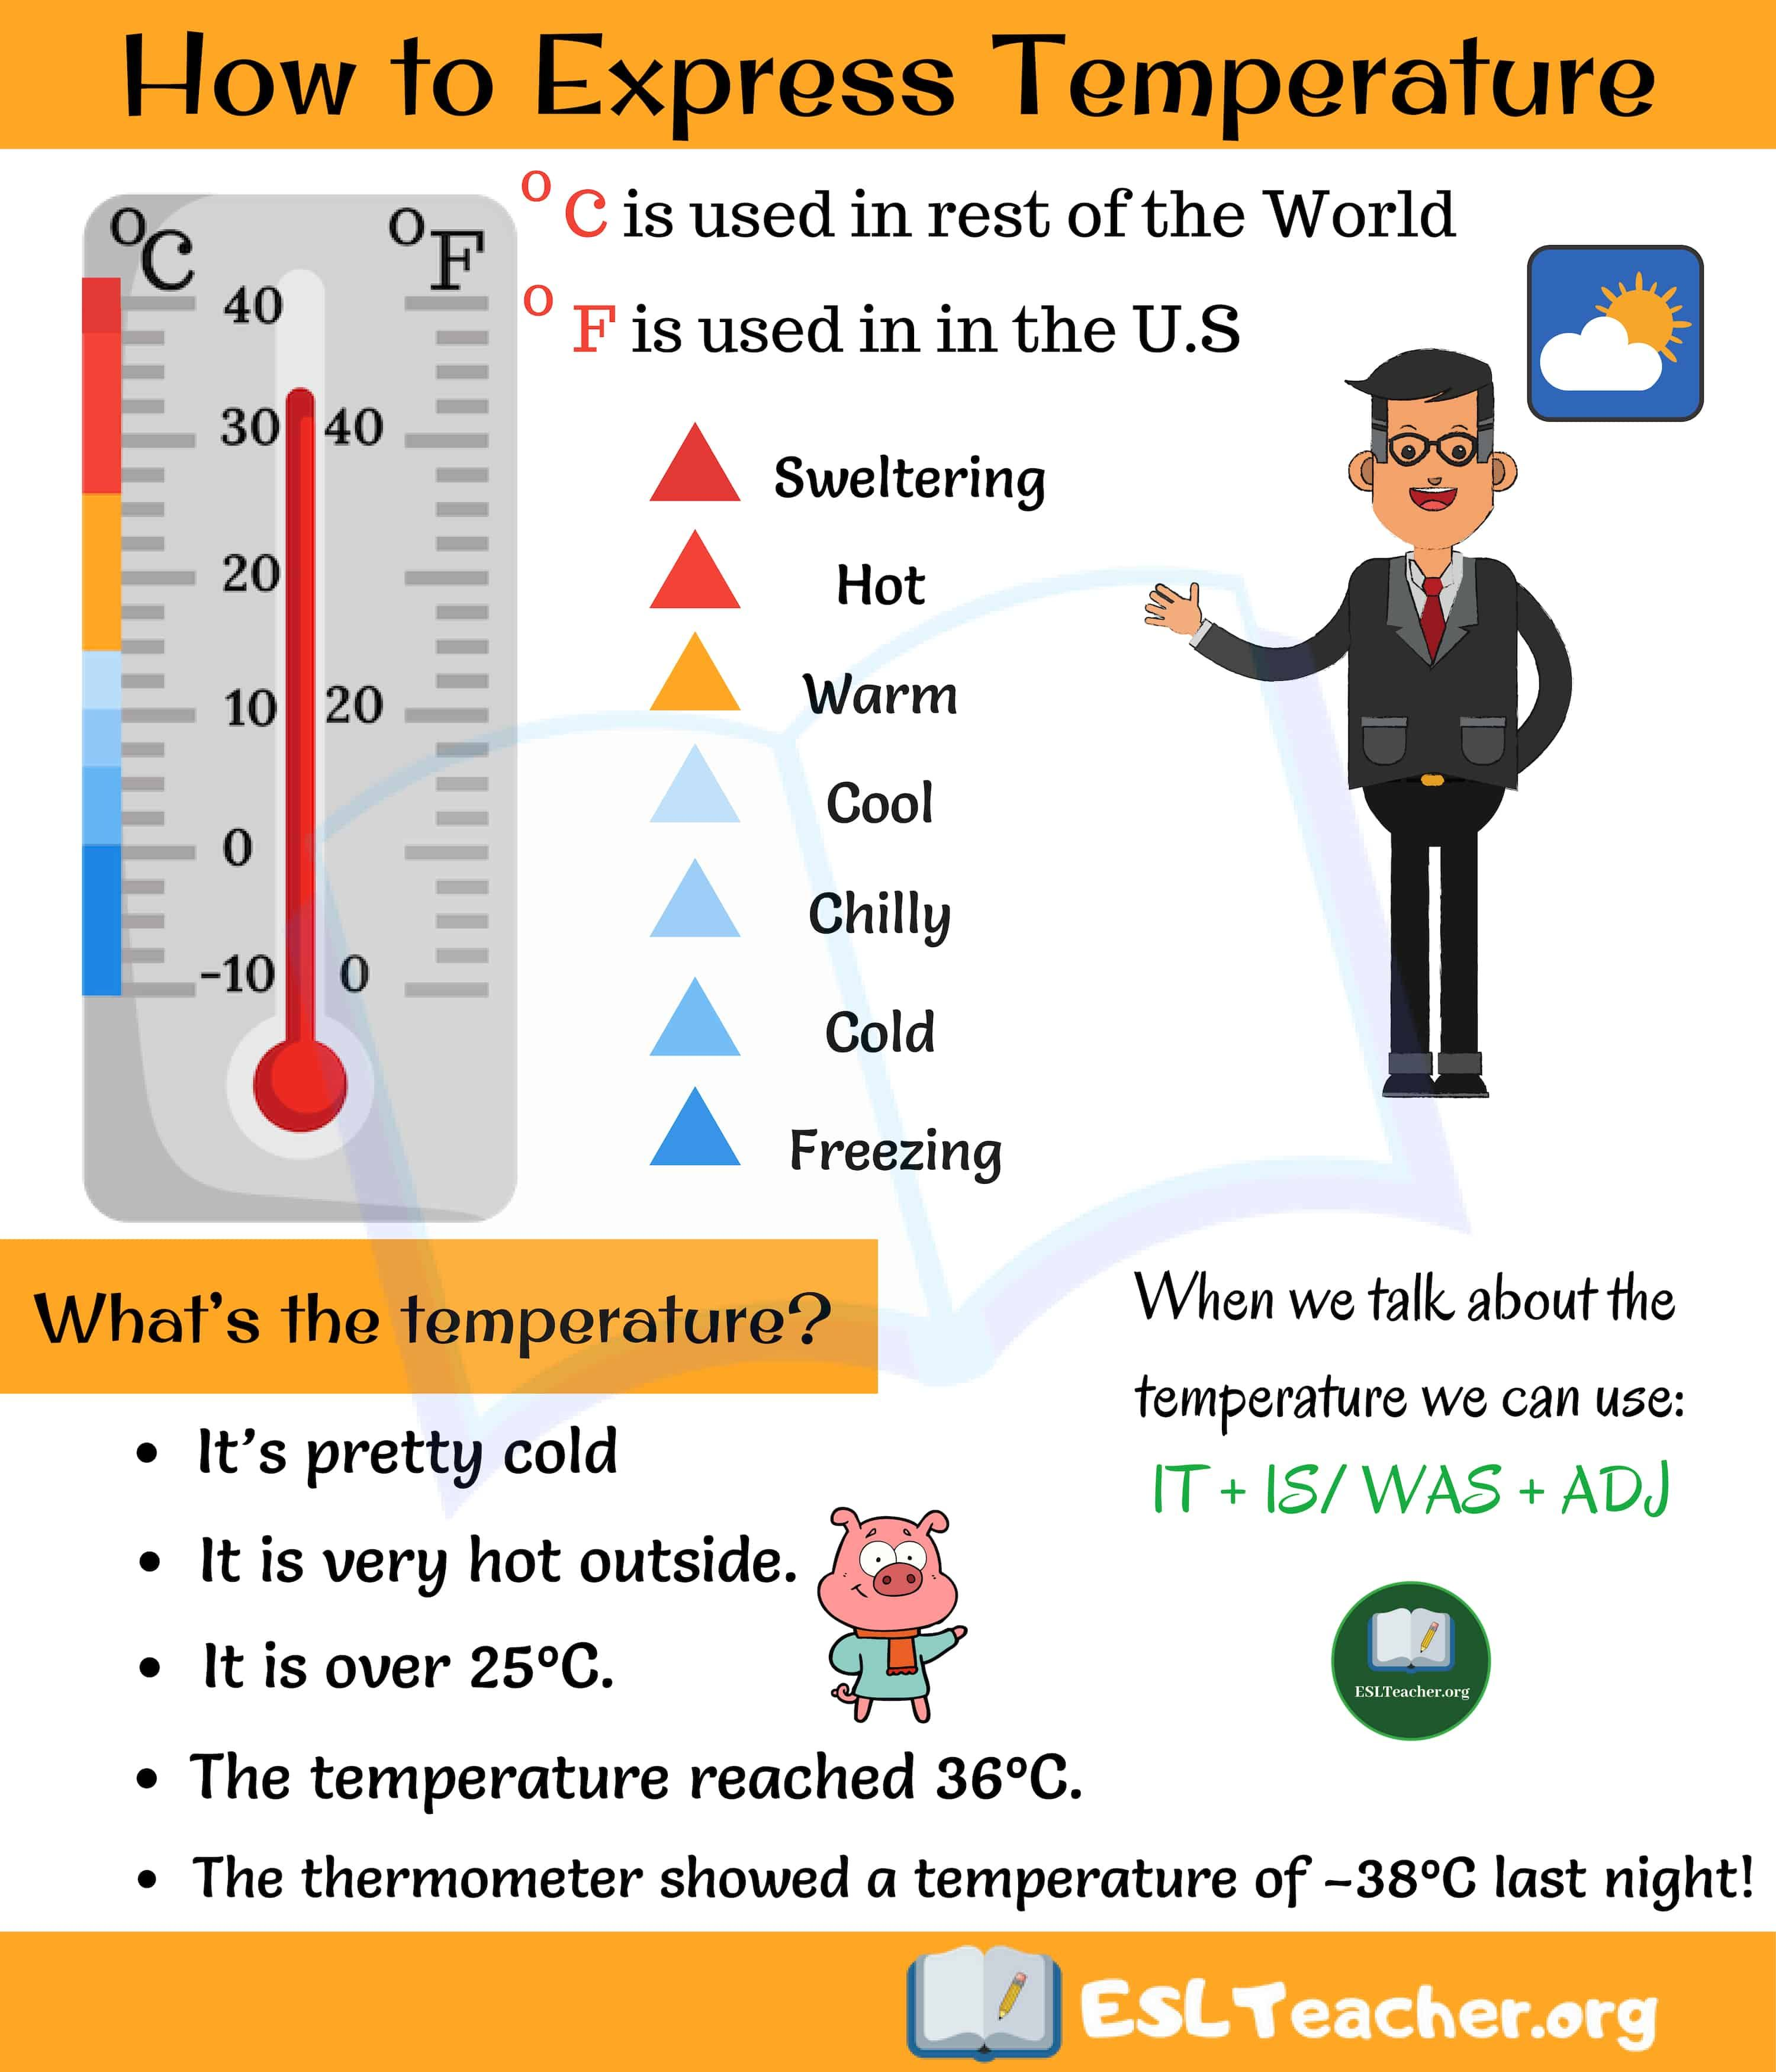 Temperature Vocabulary And Expressions Vocabulary English Worksheets For Kids English Language Learning [ 3500 x 3000 Pixel ]